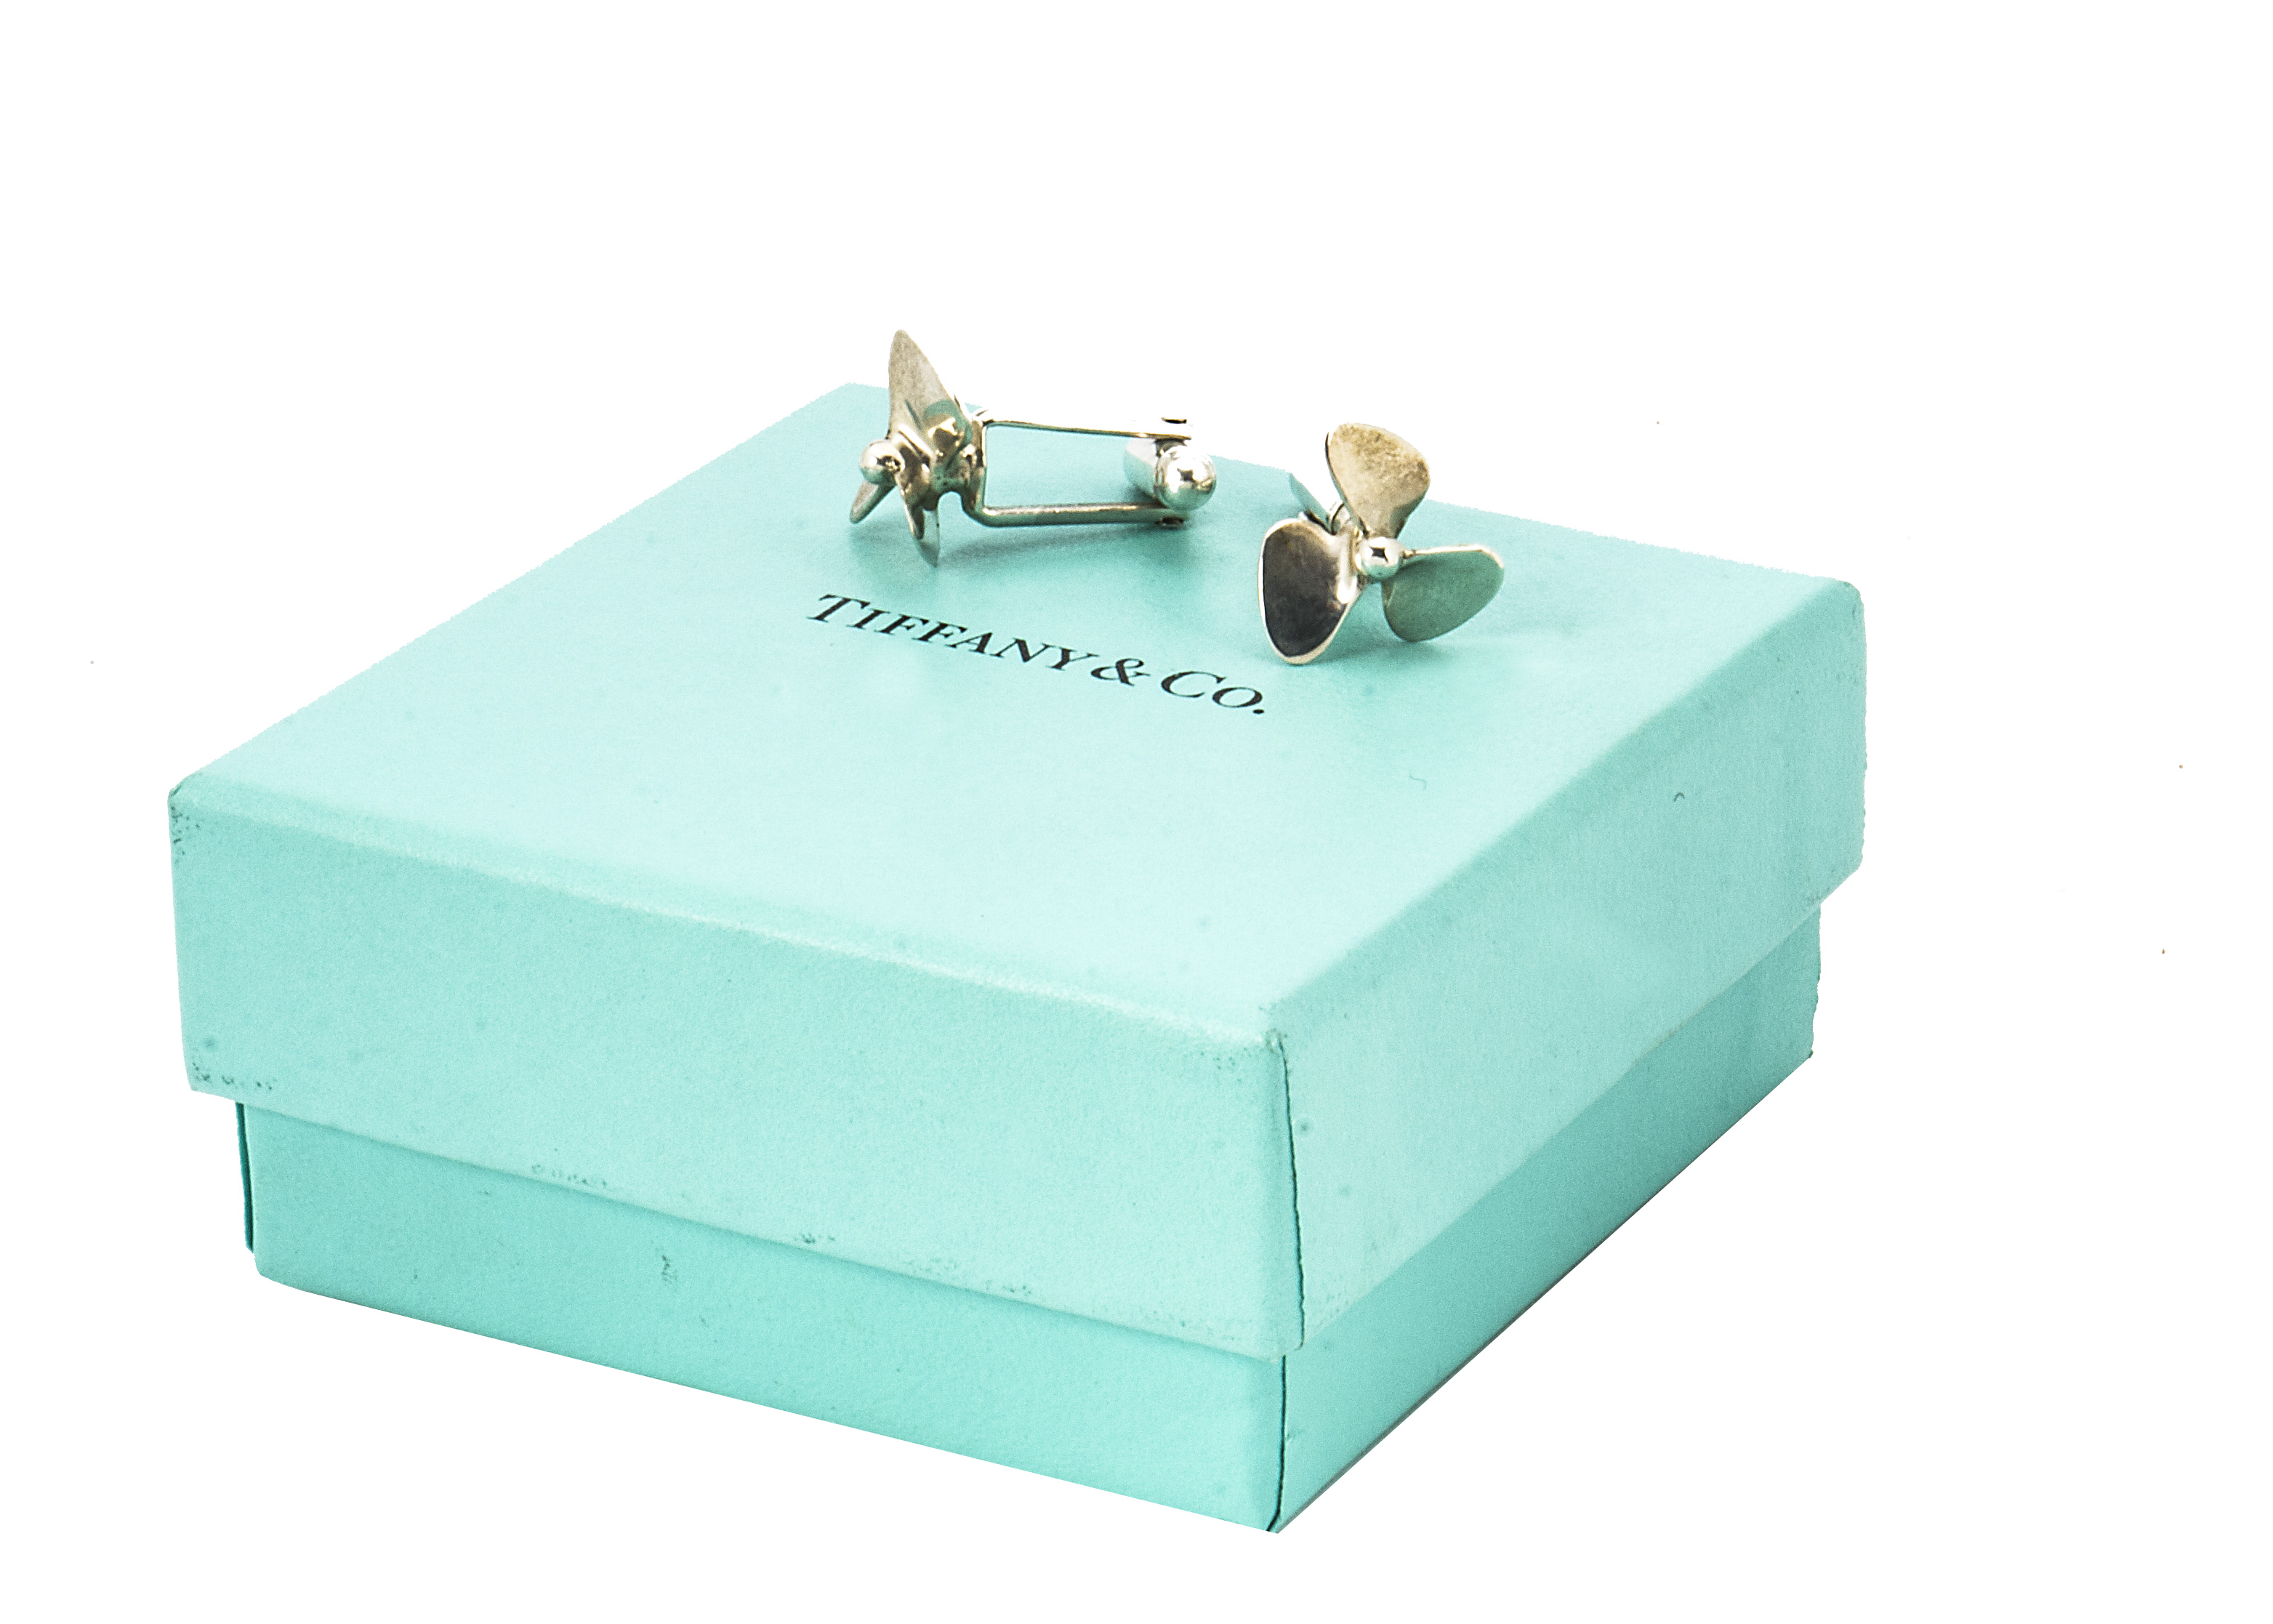 Lot 52 - A pair of modern silver cufflinks from Tiffany & Co, with propellers, in box and bag